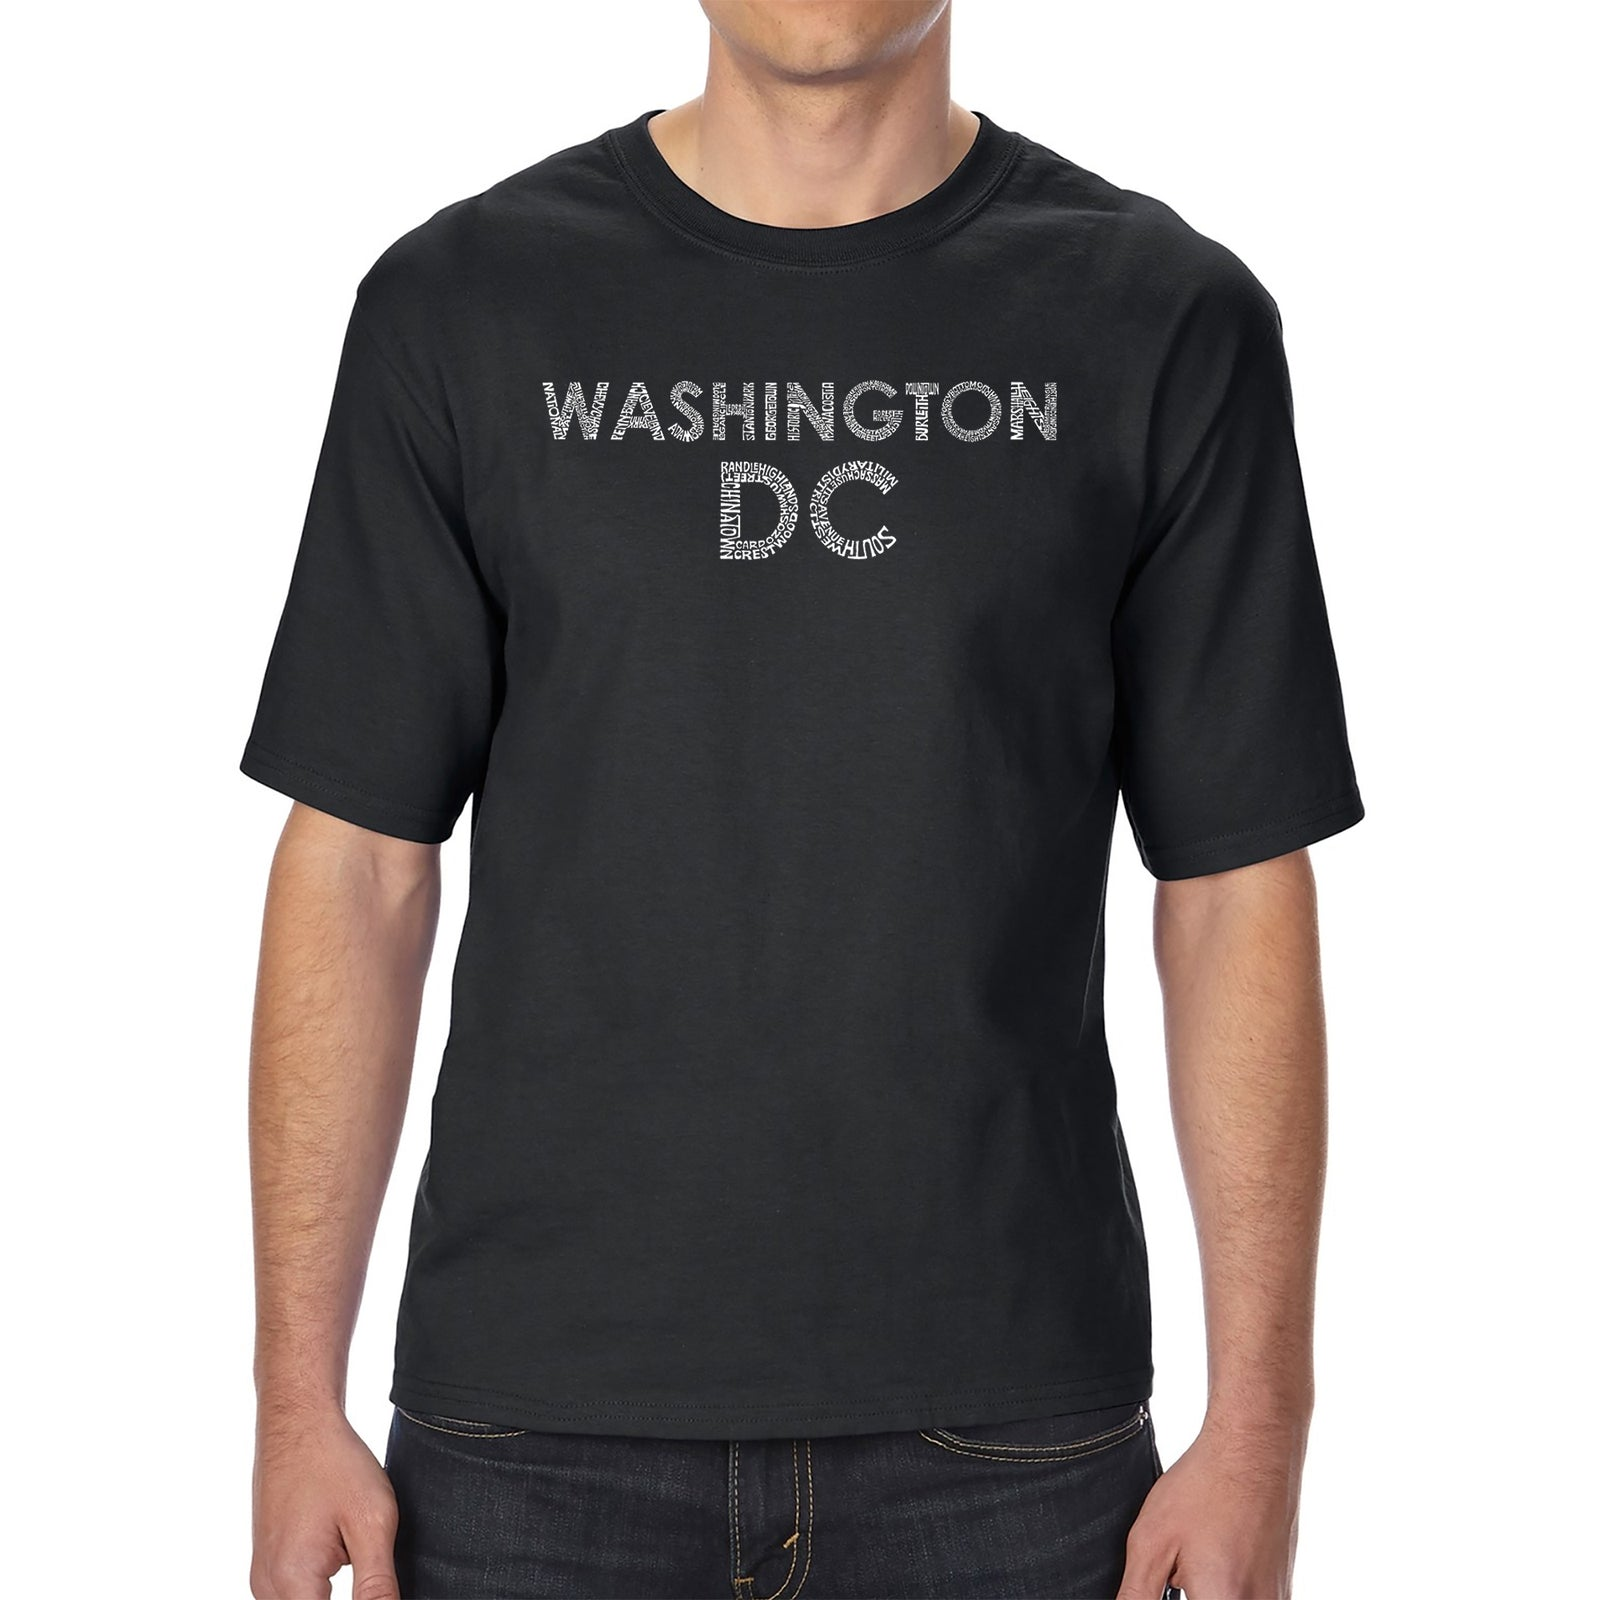 Men's Tall and Long Word Art T-shirt - WASHINGTON DC NEIGHBORHOODS